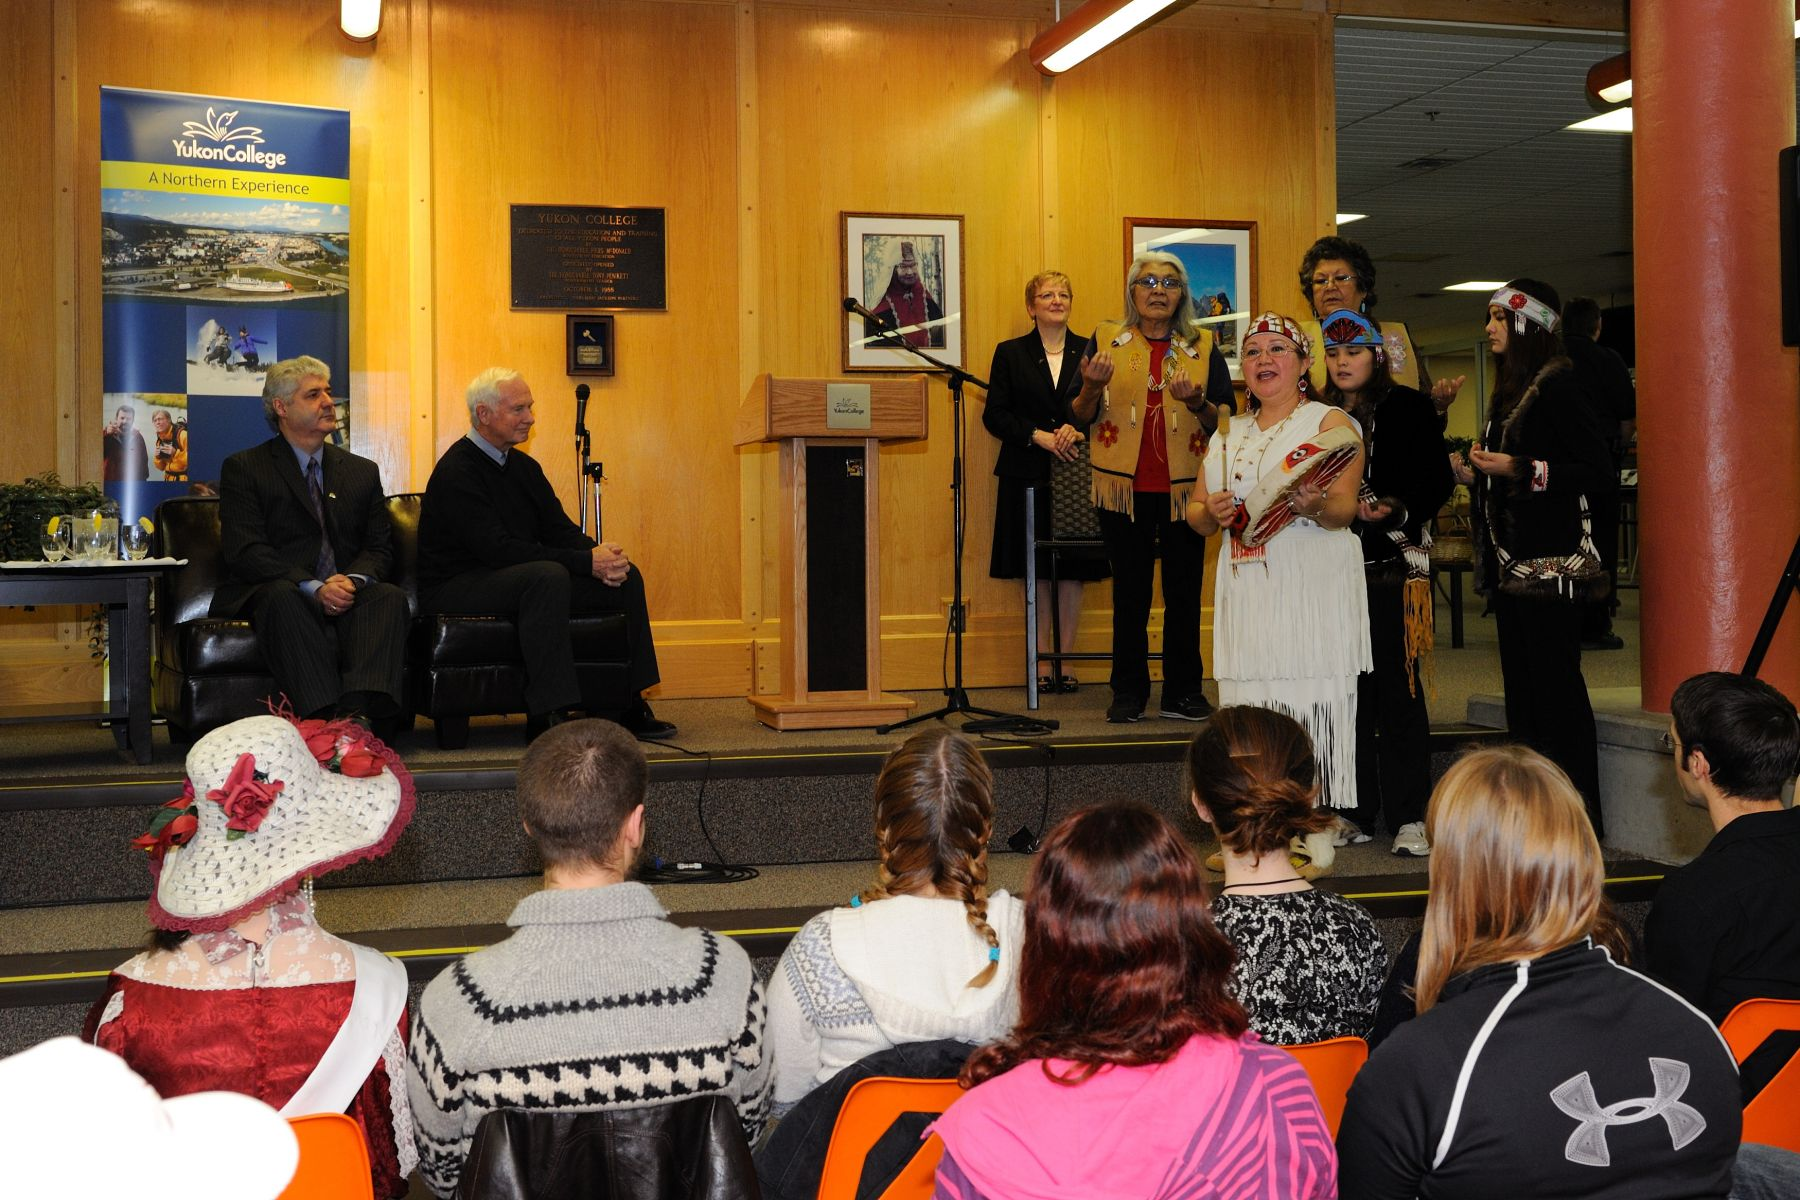 Linda Harvey performed a welcome song in front of His Excellency and the students.